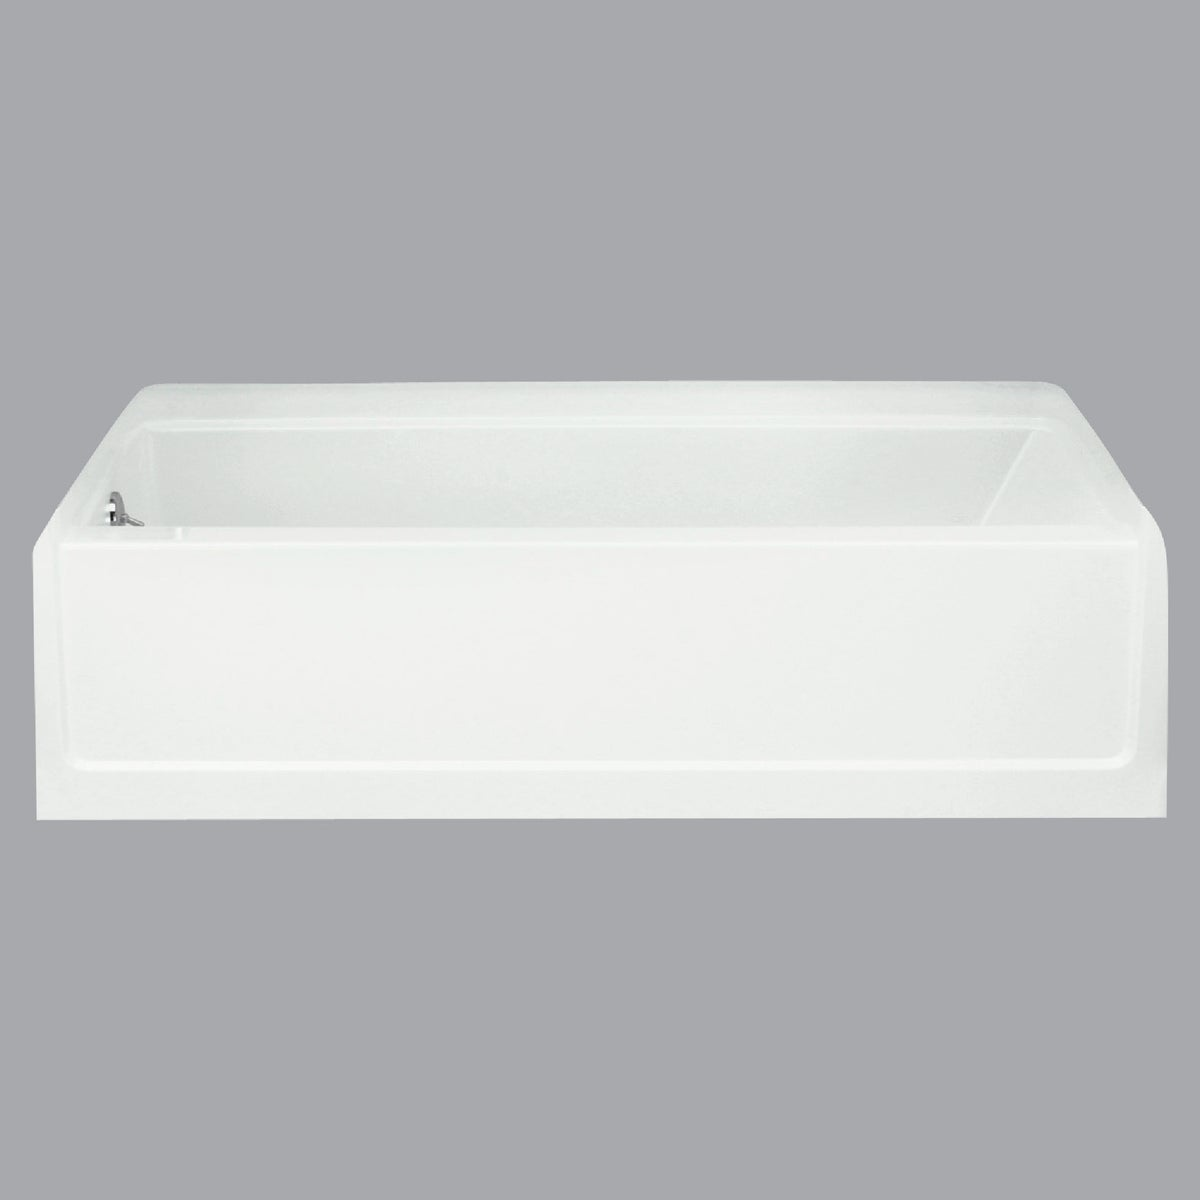 WHITE ADVANTAGE LH TUB - 61031110-0 by Sterling Pbg/vikrell